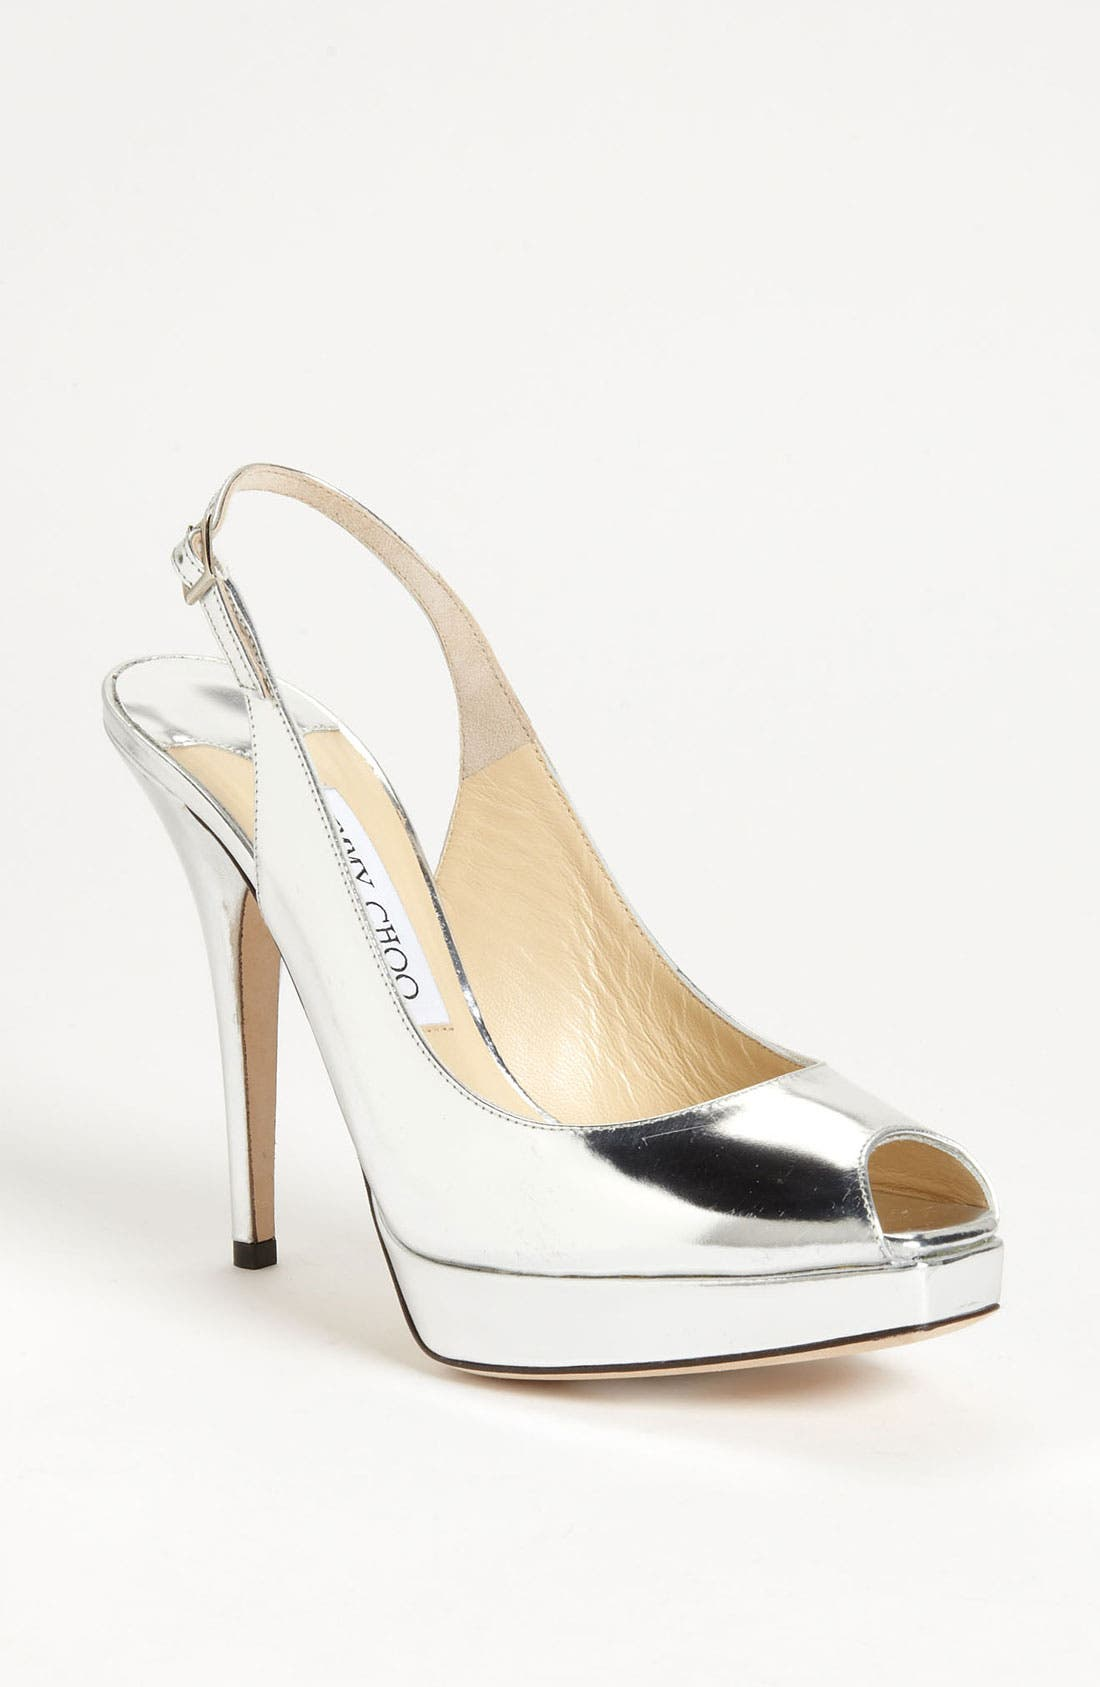 Alternate Image 1 Selected - Jimmy Choo 'Clue' Slingback Peep Toe Pump